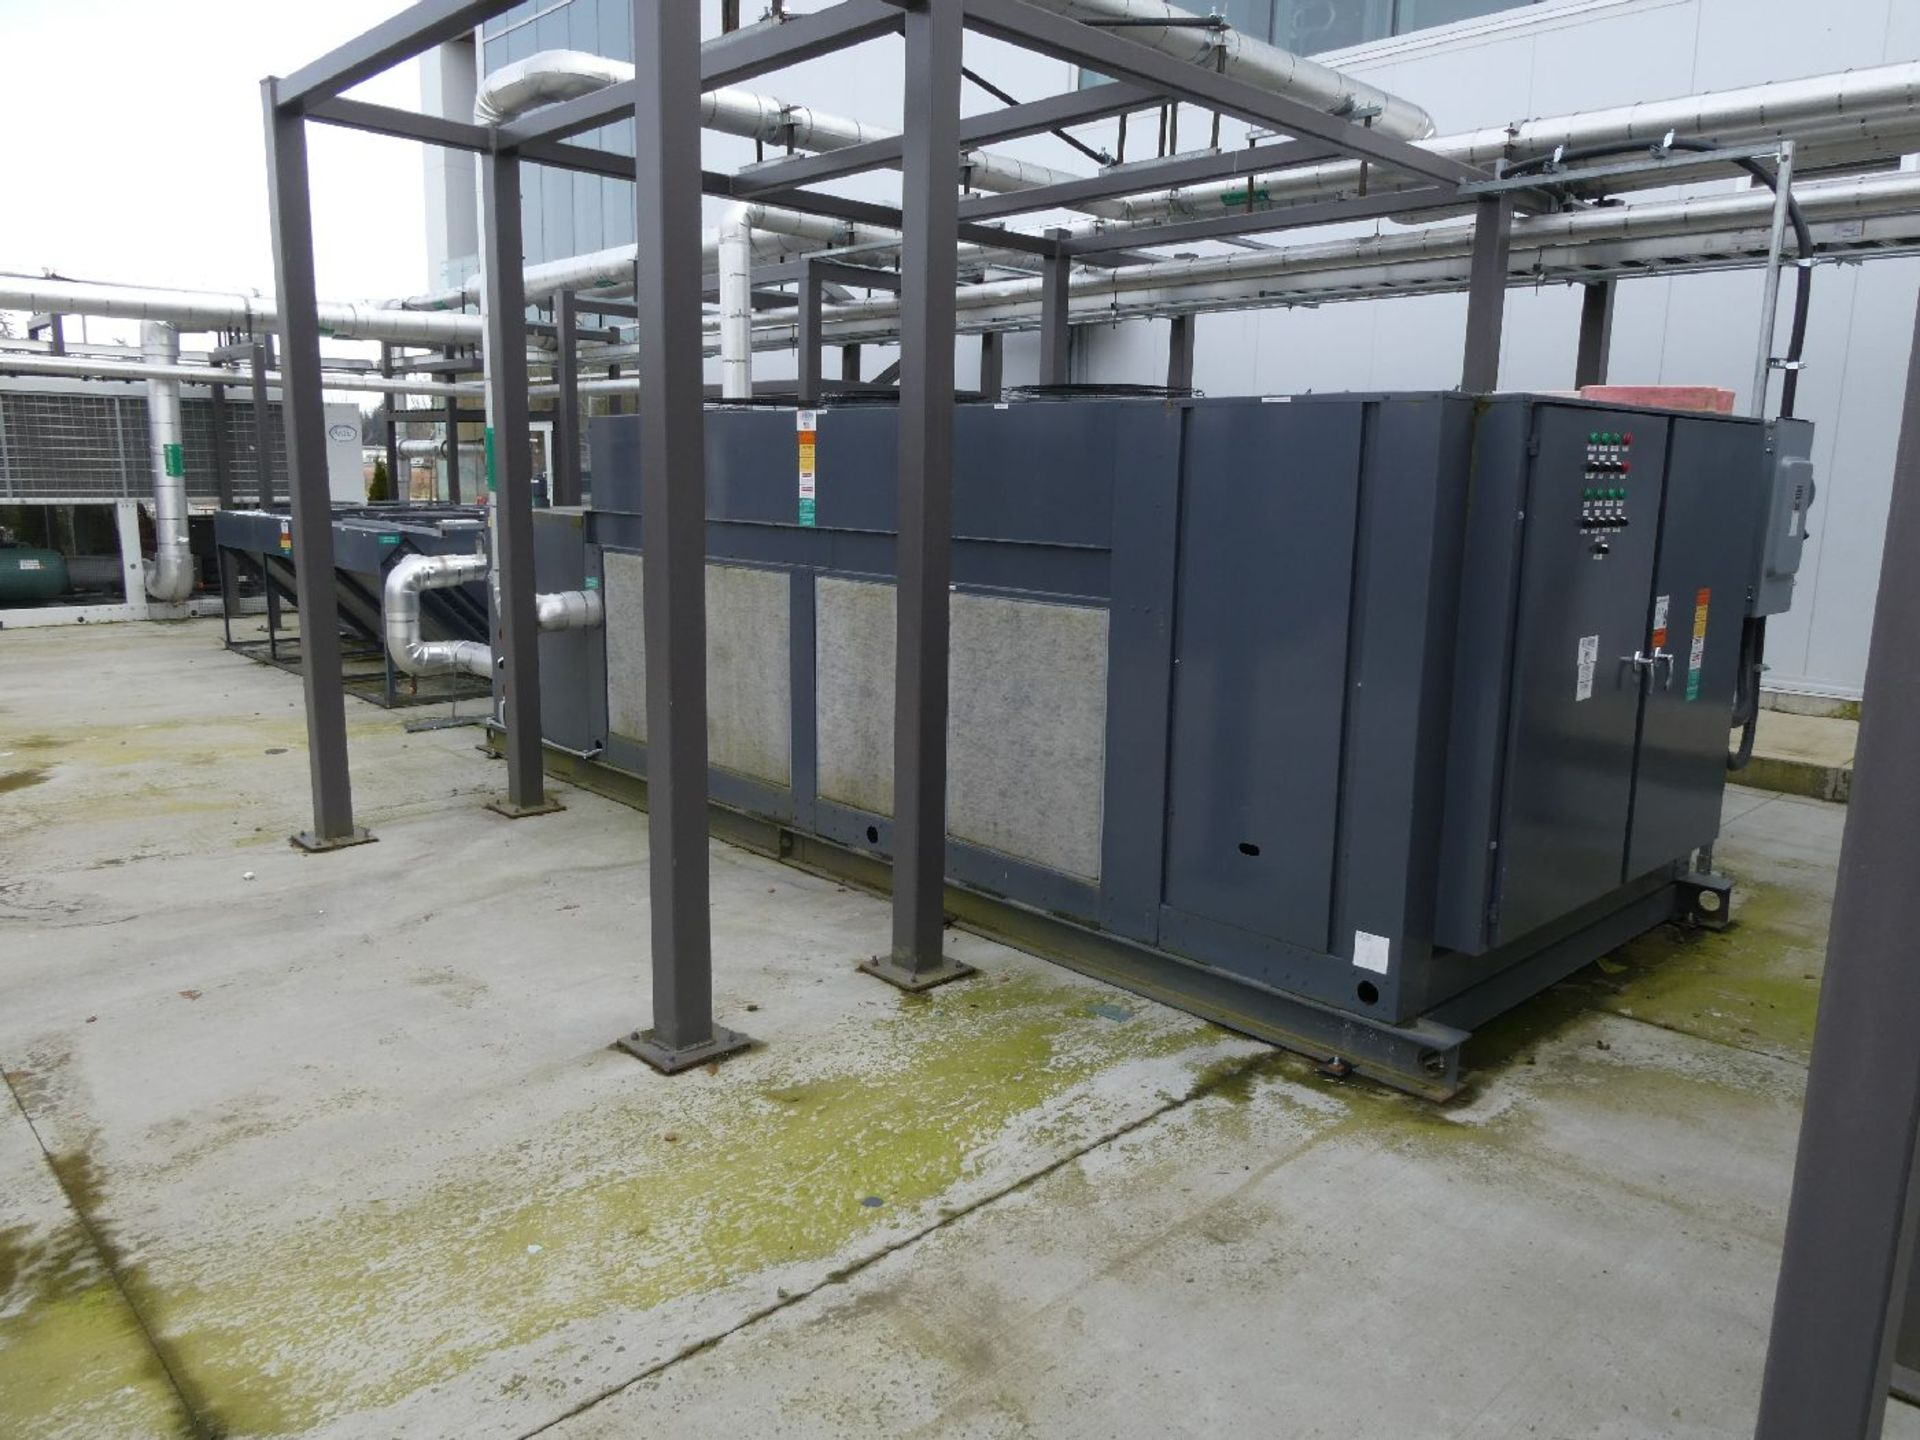 ROTAX Closed Loop Solvent Based Continuous Oil Extraction System - Image 60 of 68